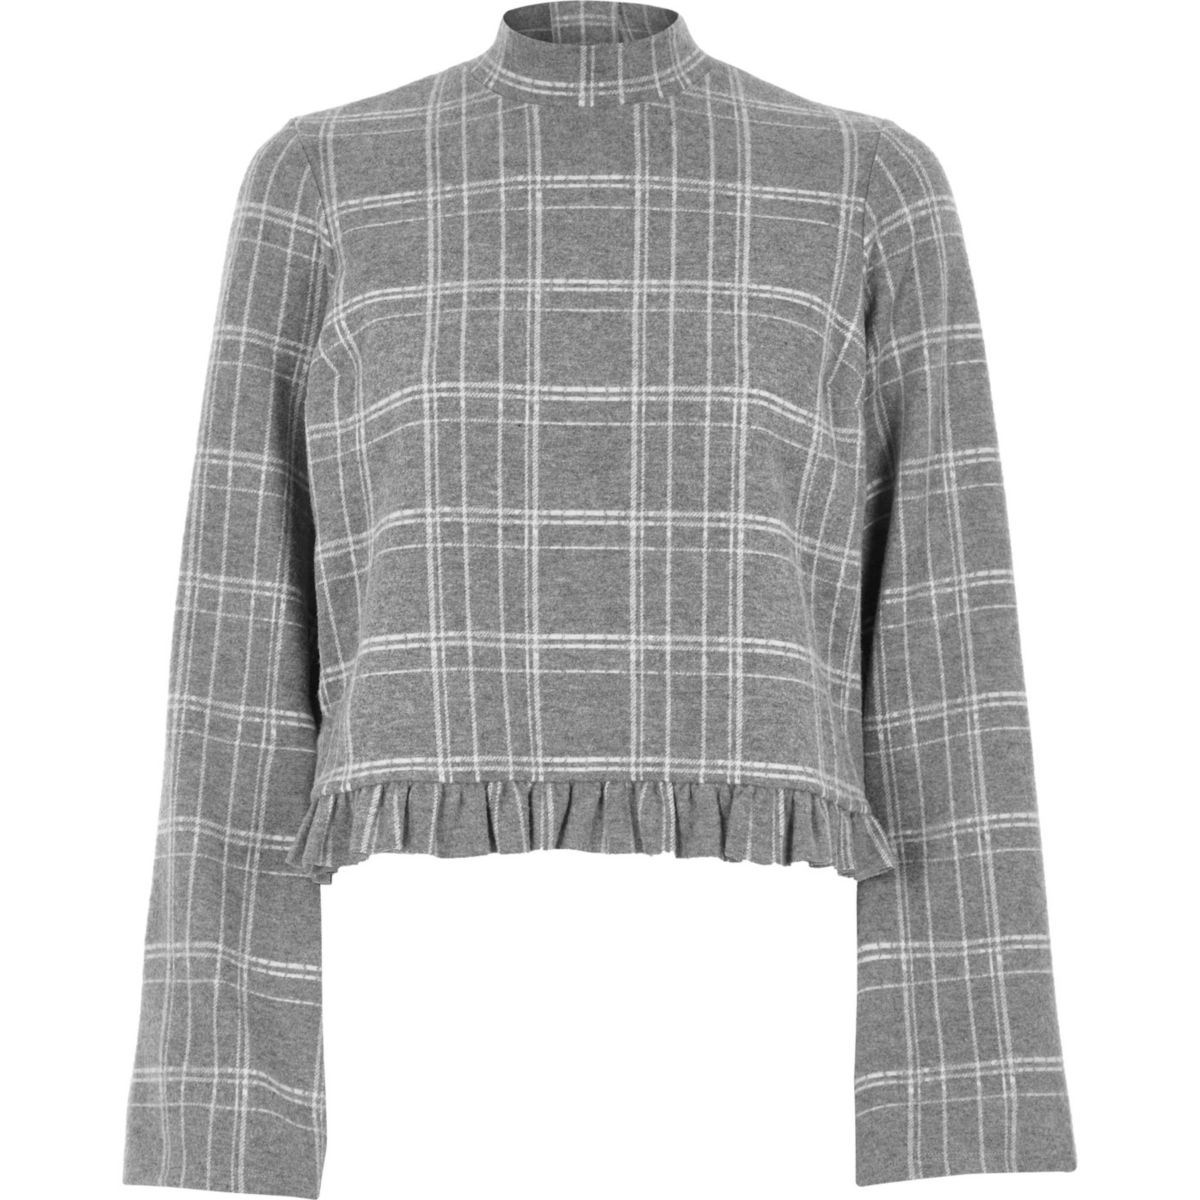 Grey check high neck frill hem top